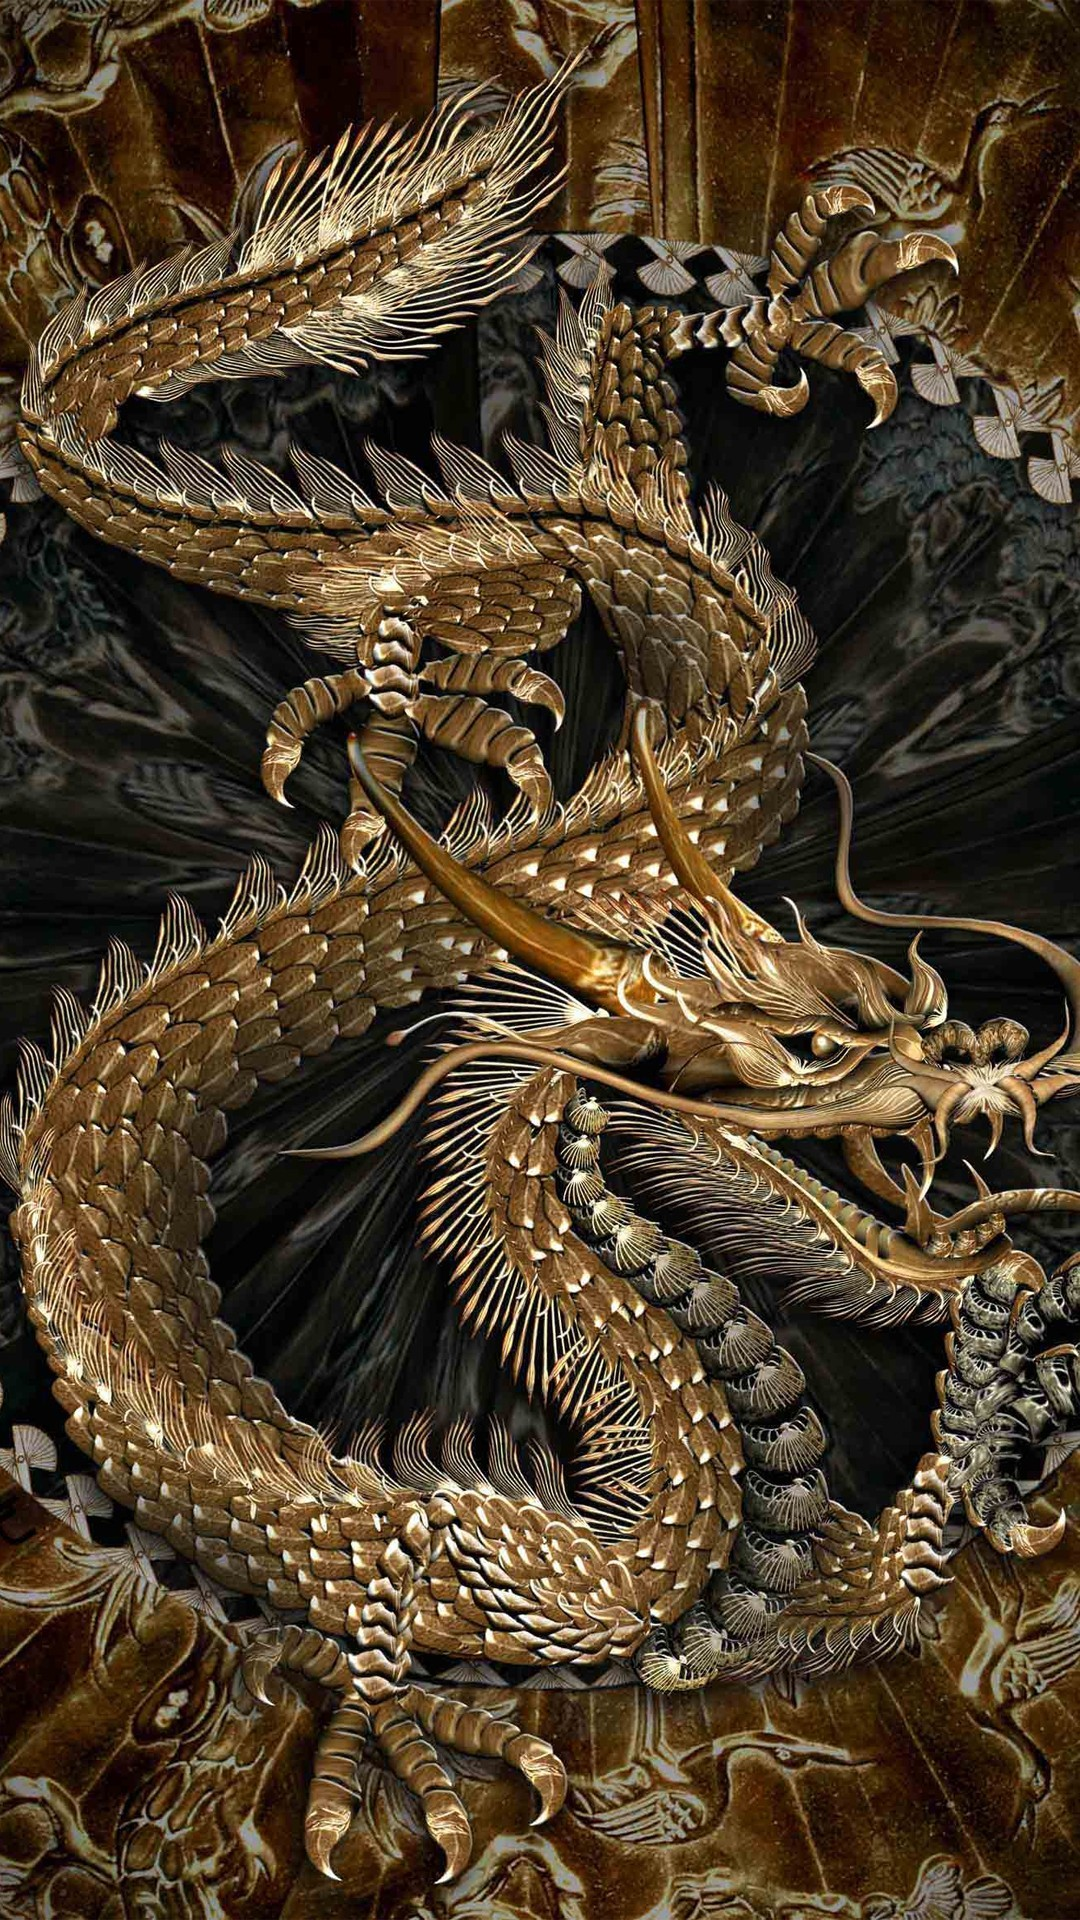 Dragon-Master-of-Mystical-Fire-is-the-oldest-and-wisest-spirit-animal-illuminating-collectiveâ€-wallpaper-wp3405078